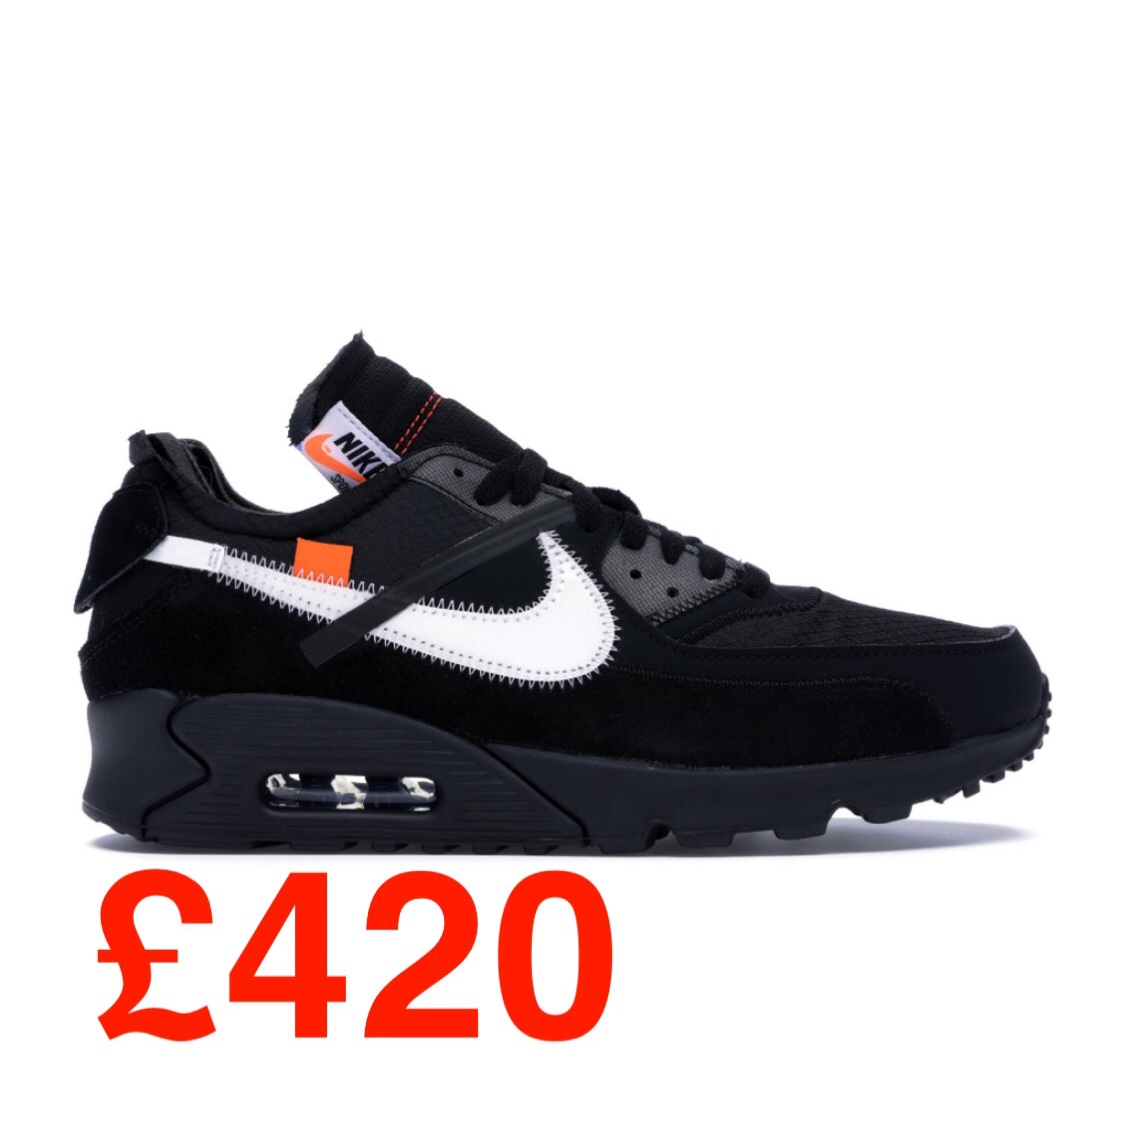 Off White x Nike Air Max 90 Black Size U.K. Depop